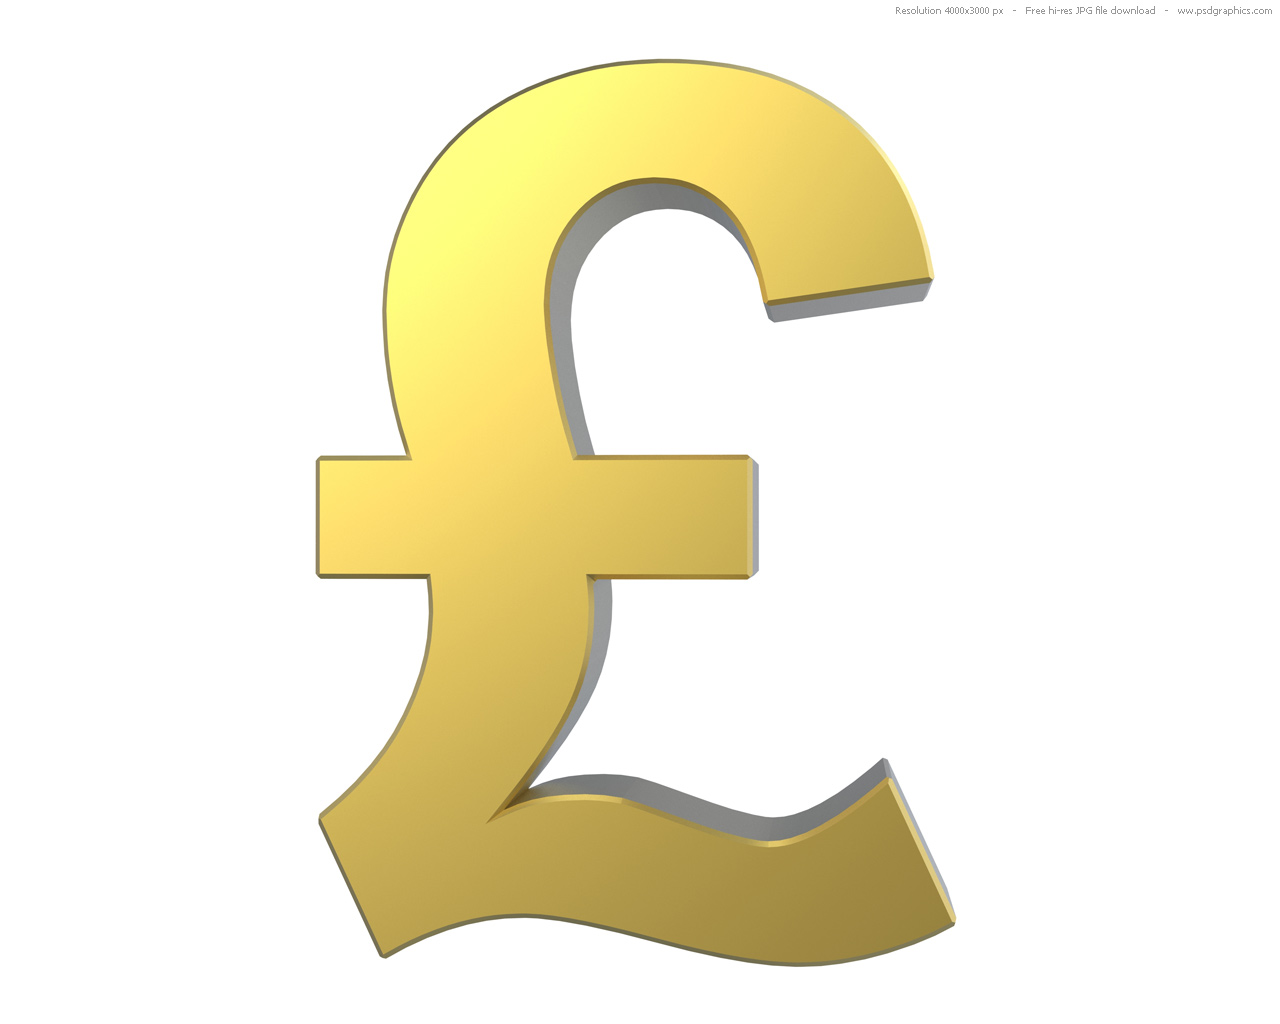 Gold Pound Symbol Psdgraphics